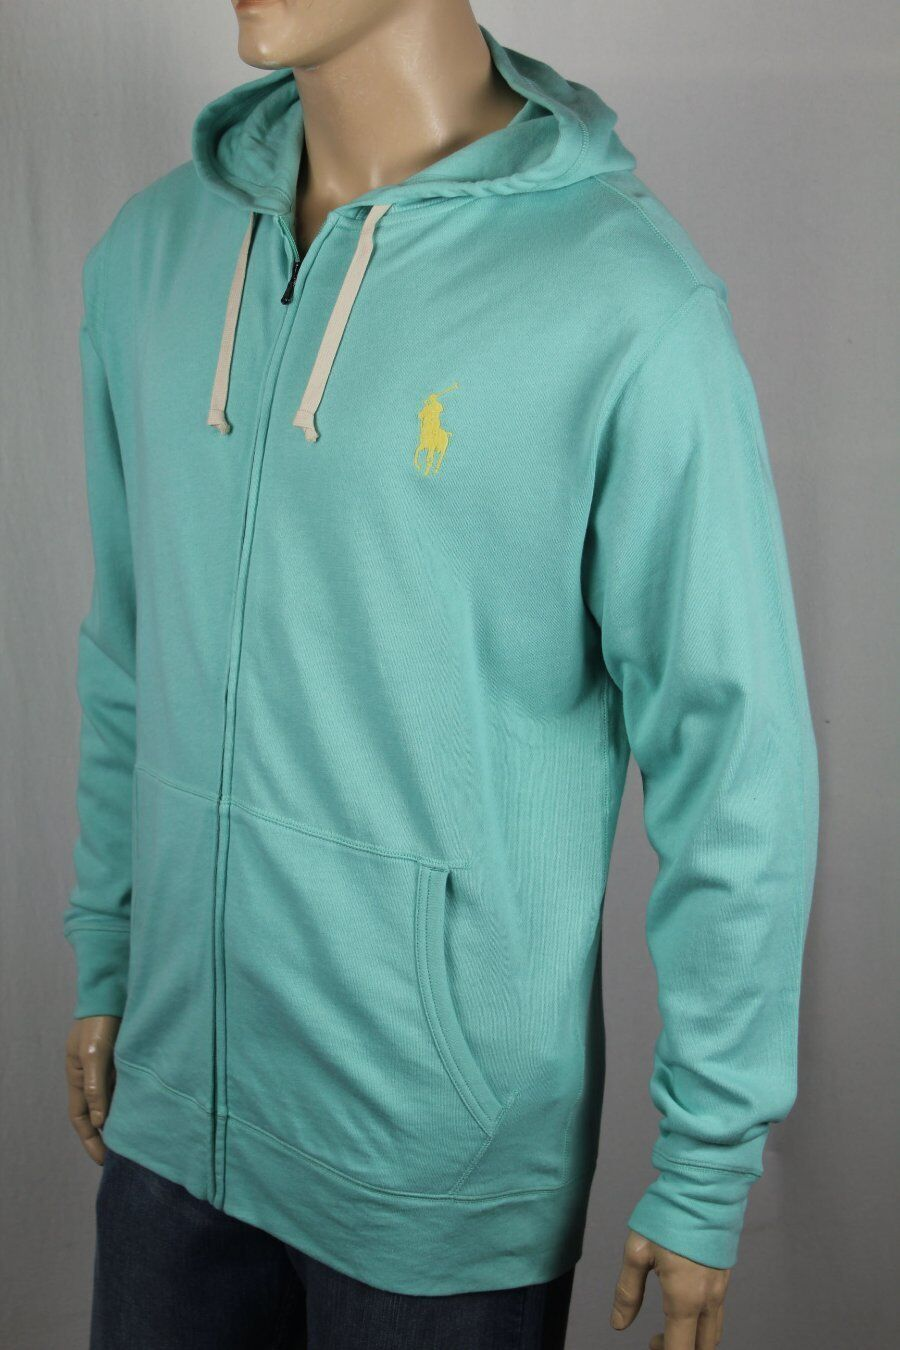 Ralph Lauren Lightweight Aqua Grün Hoodie Full Zip Sweatshirt Big Gelb Pony